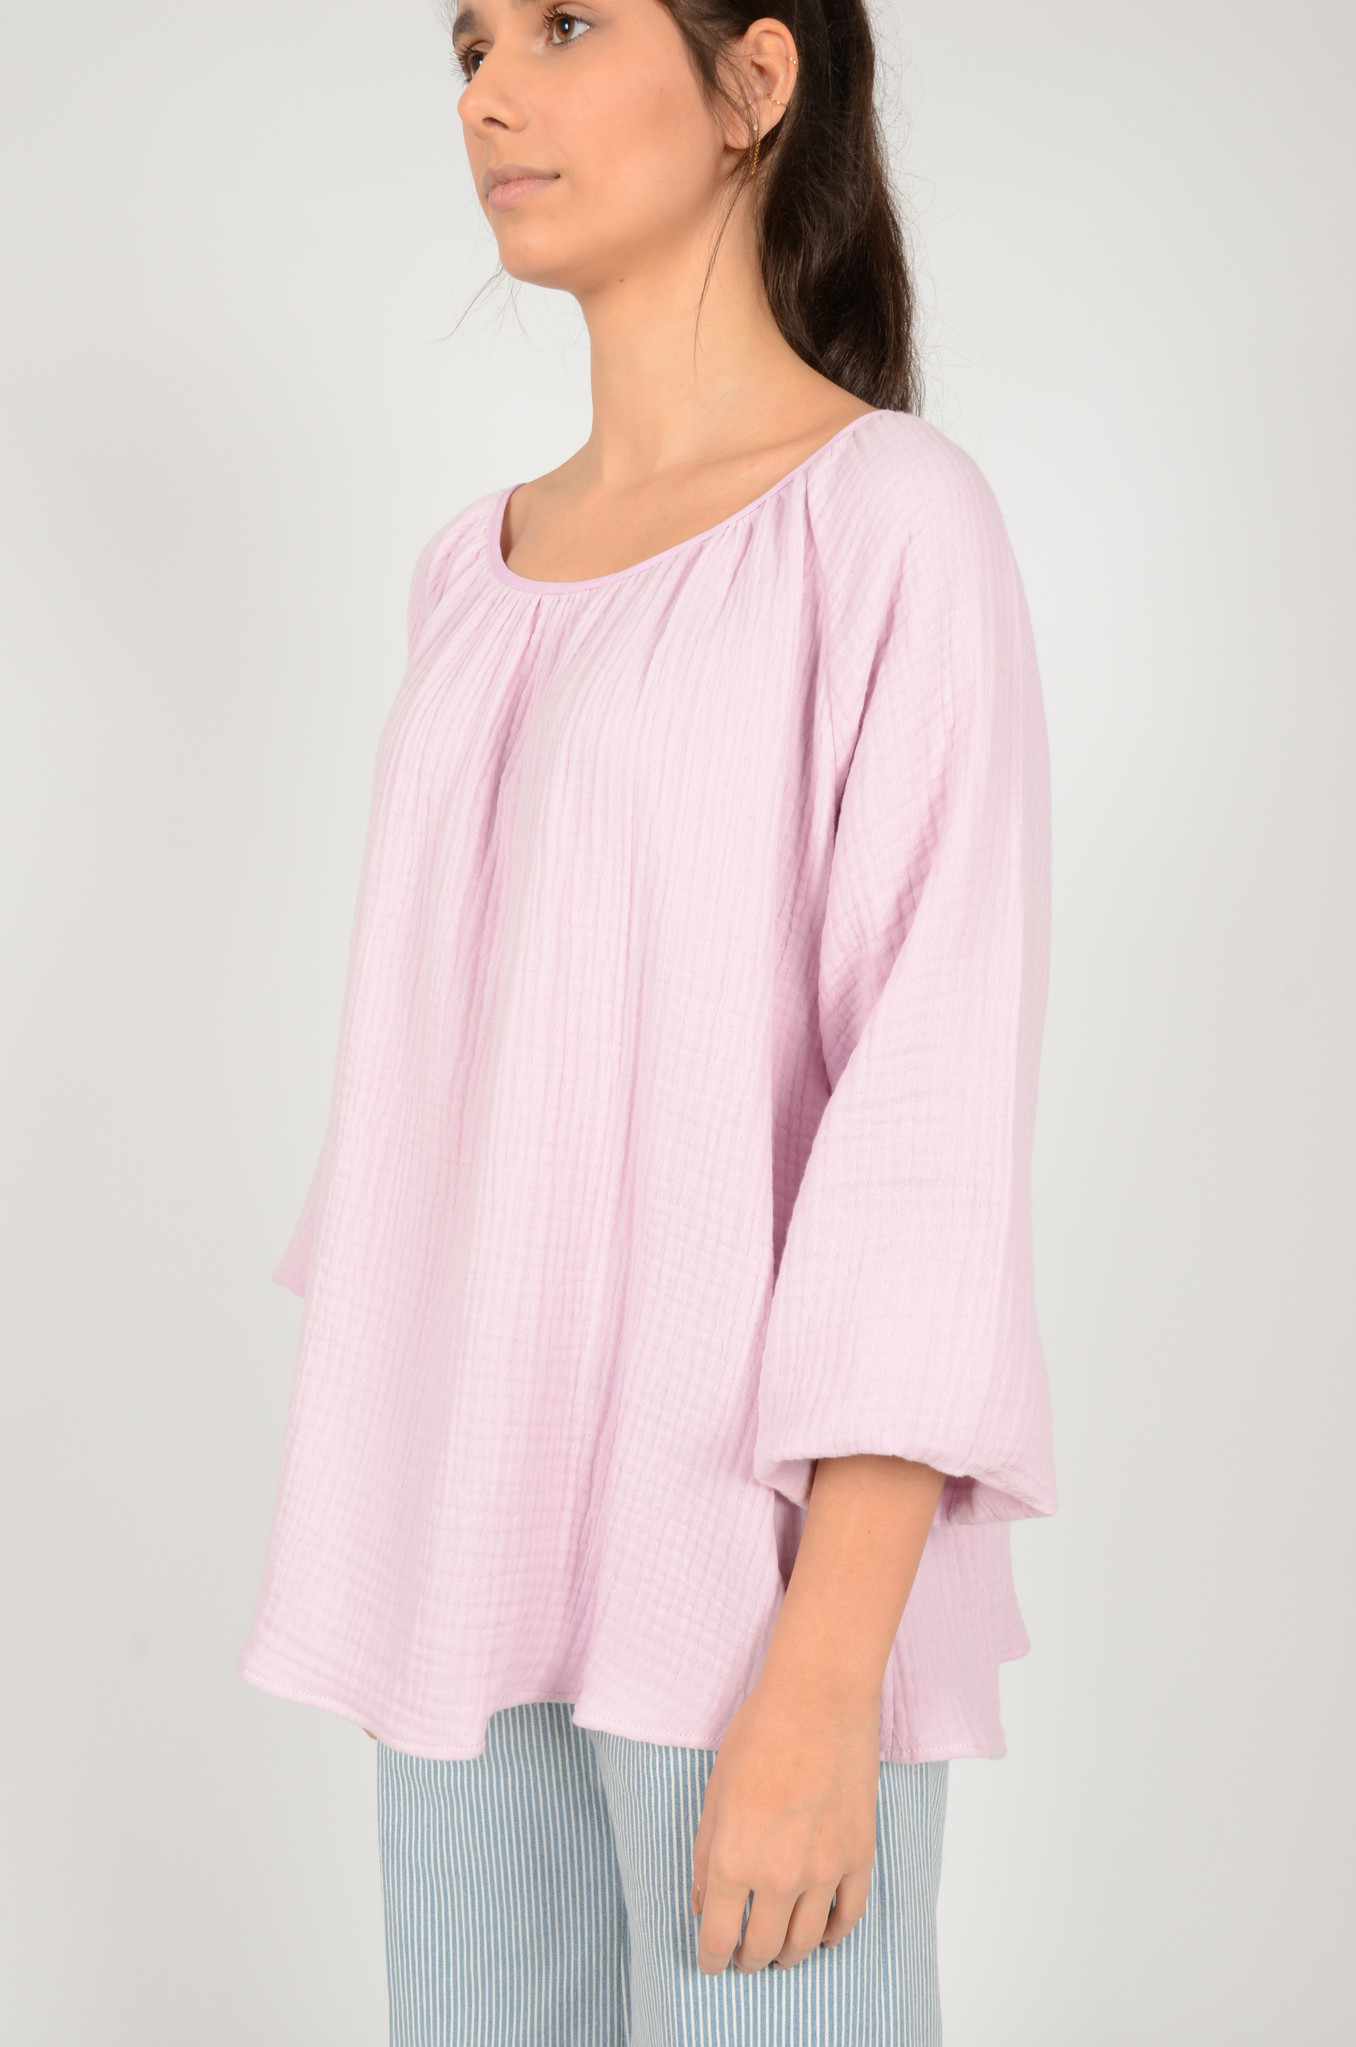 MORNING BLOUSE IN LILAC-3